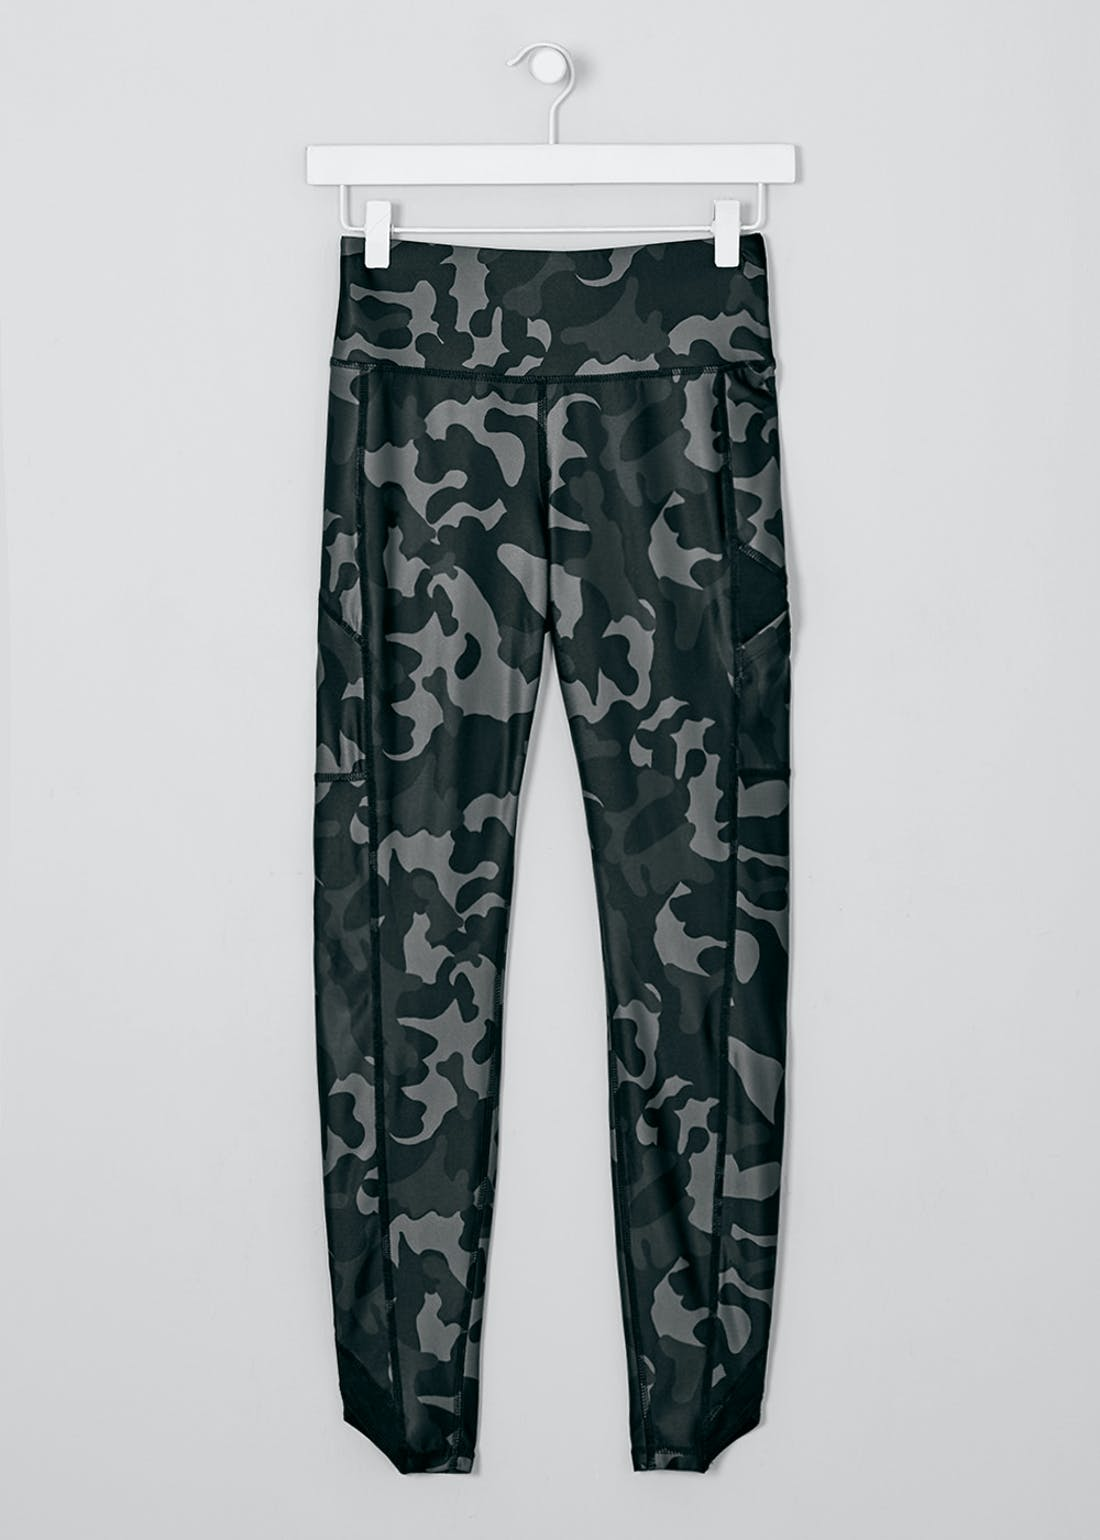 Souluxe Grey Camouflage Gym Leggings